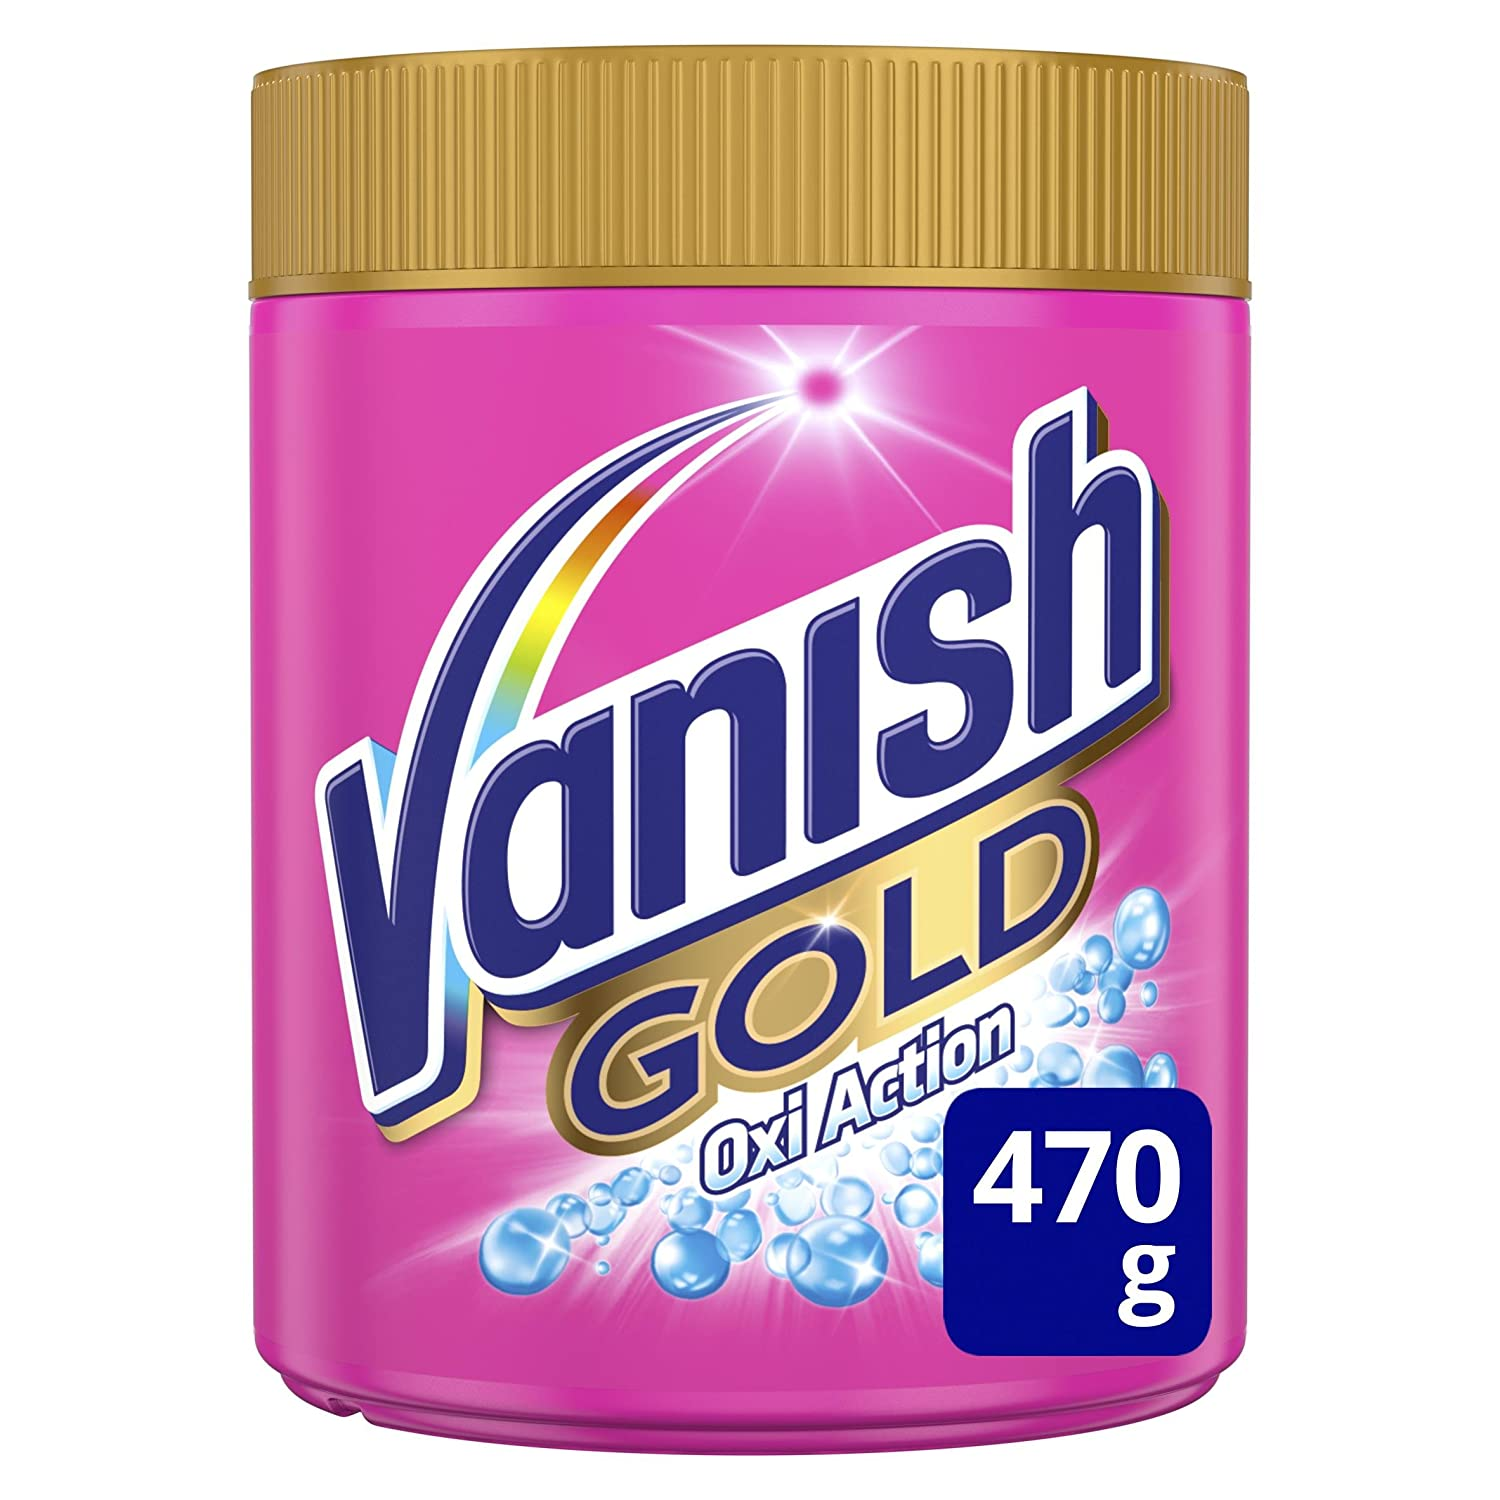 Vanish Oxiaction Gold Powder Detergente en Polvo - 470 gr: Amazon.es: Amazon Pantry